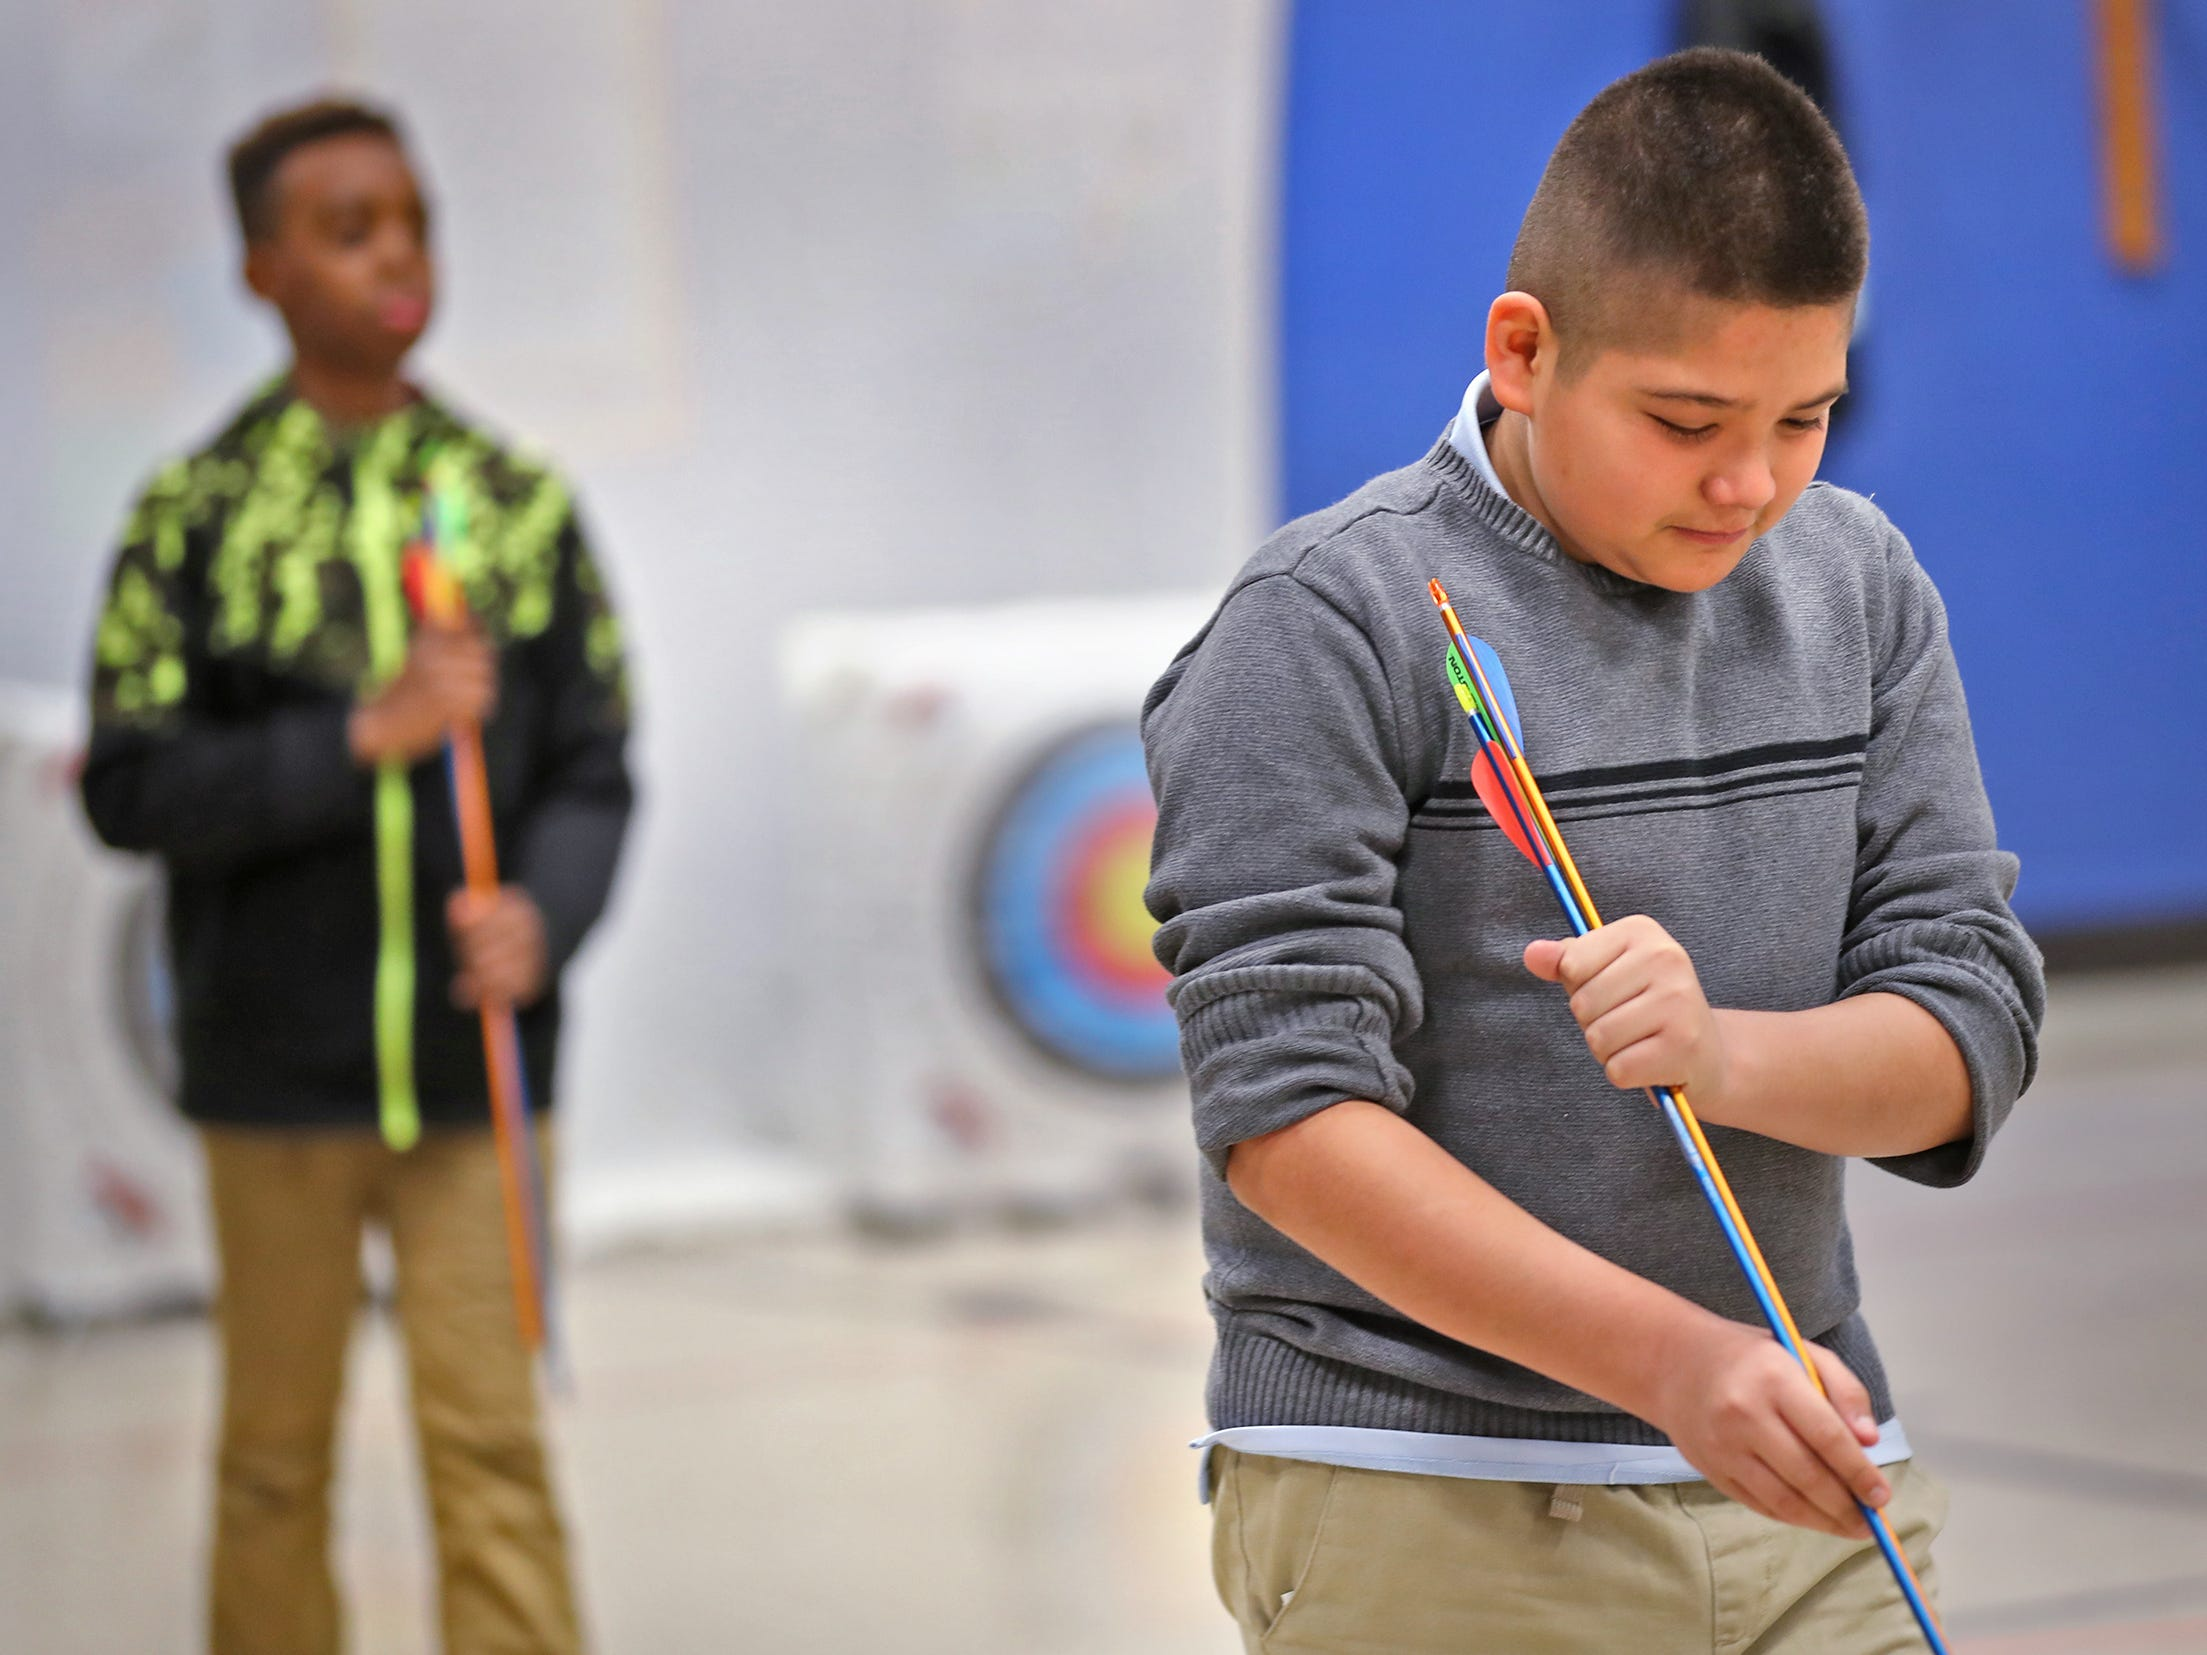 Francisco Barraza holds his arrows appropriately after retrieving them, during archery class at Lew Wallace Elementary IPS 107, Thursday, Dec. 20, 2018.